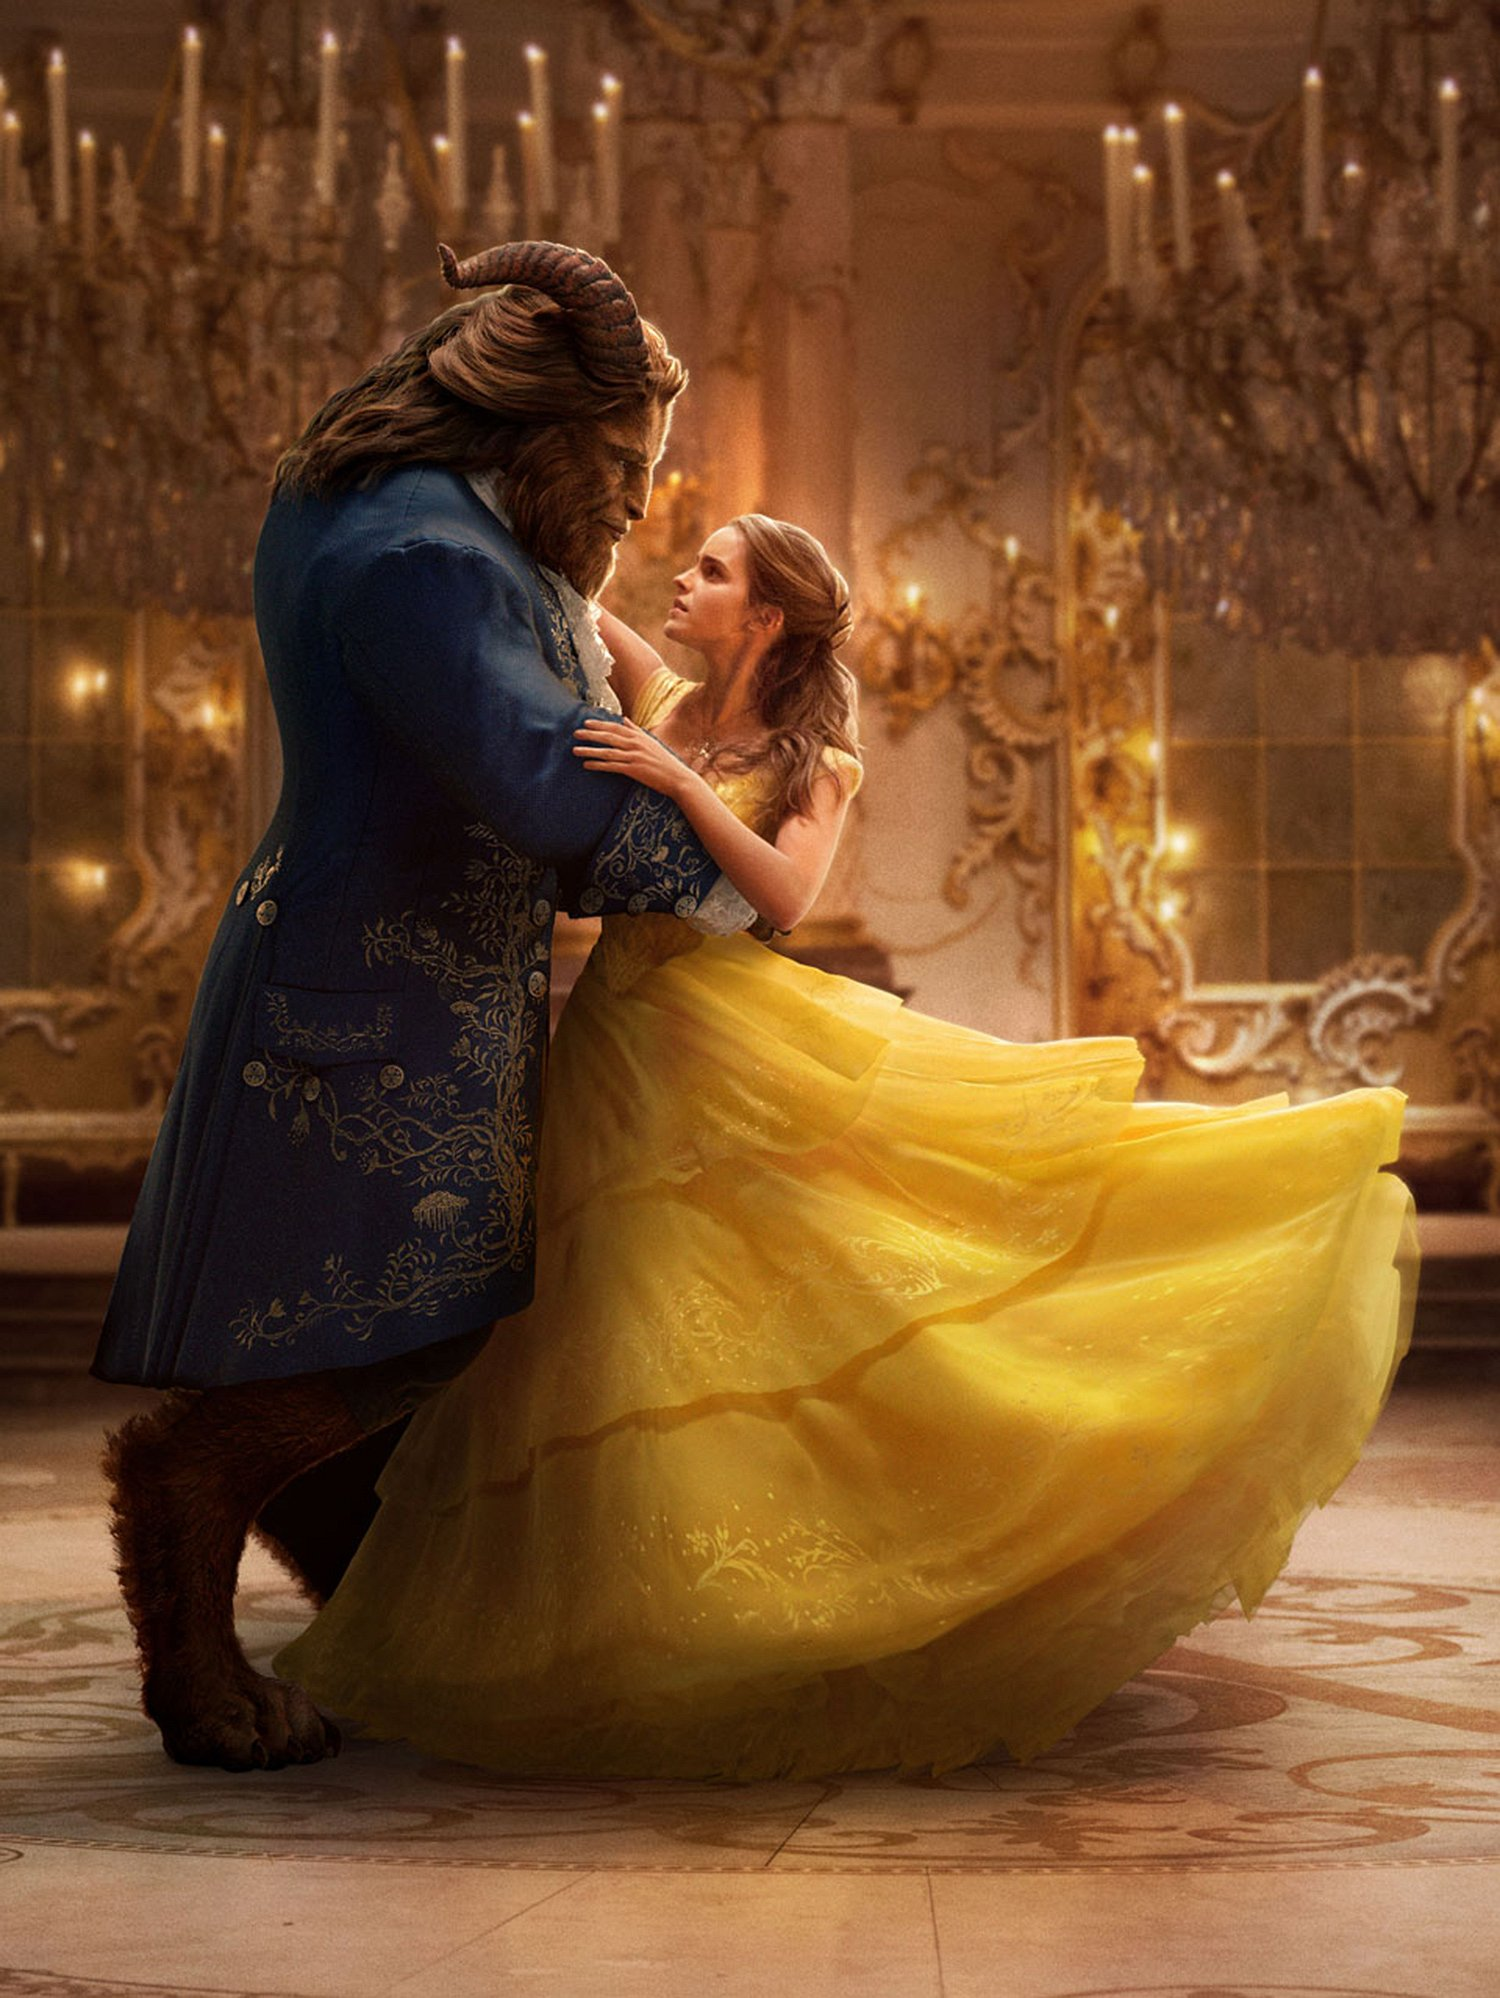 Beauty and the Beast onder vuur in Rusland en Amerika